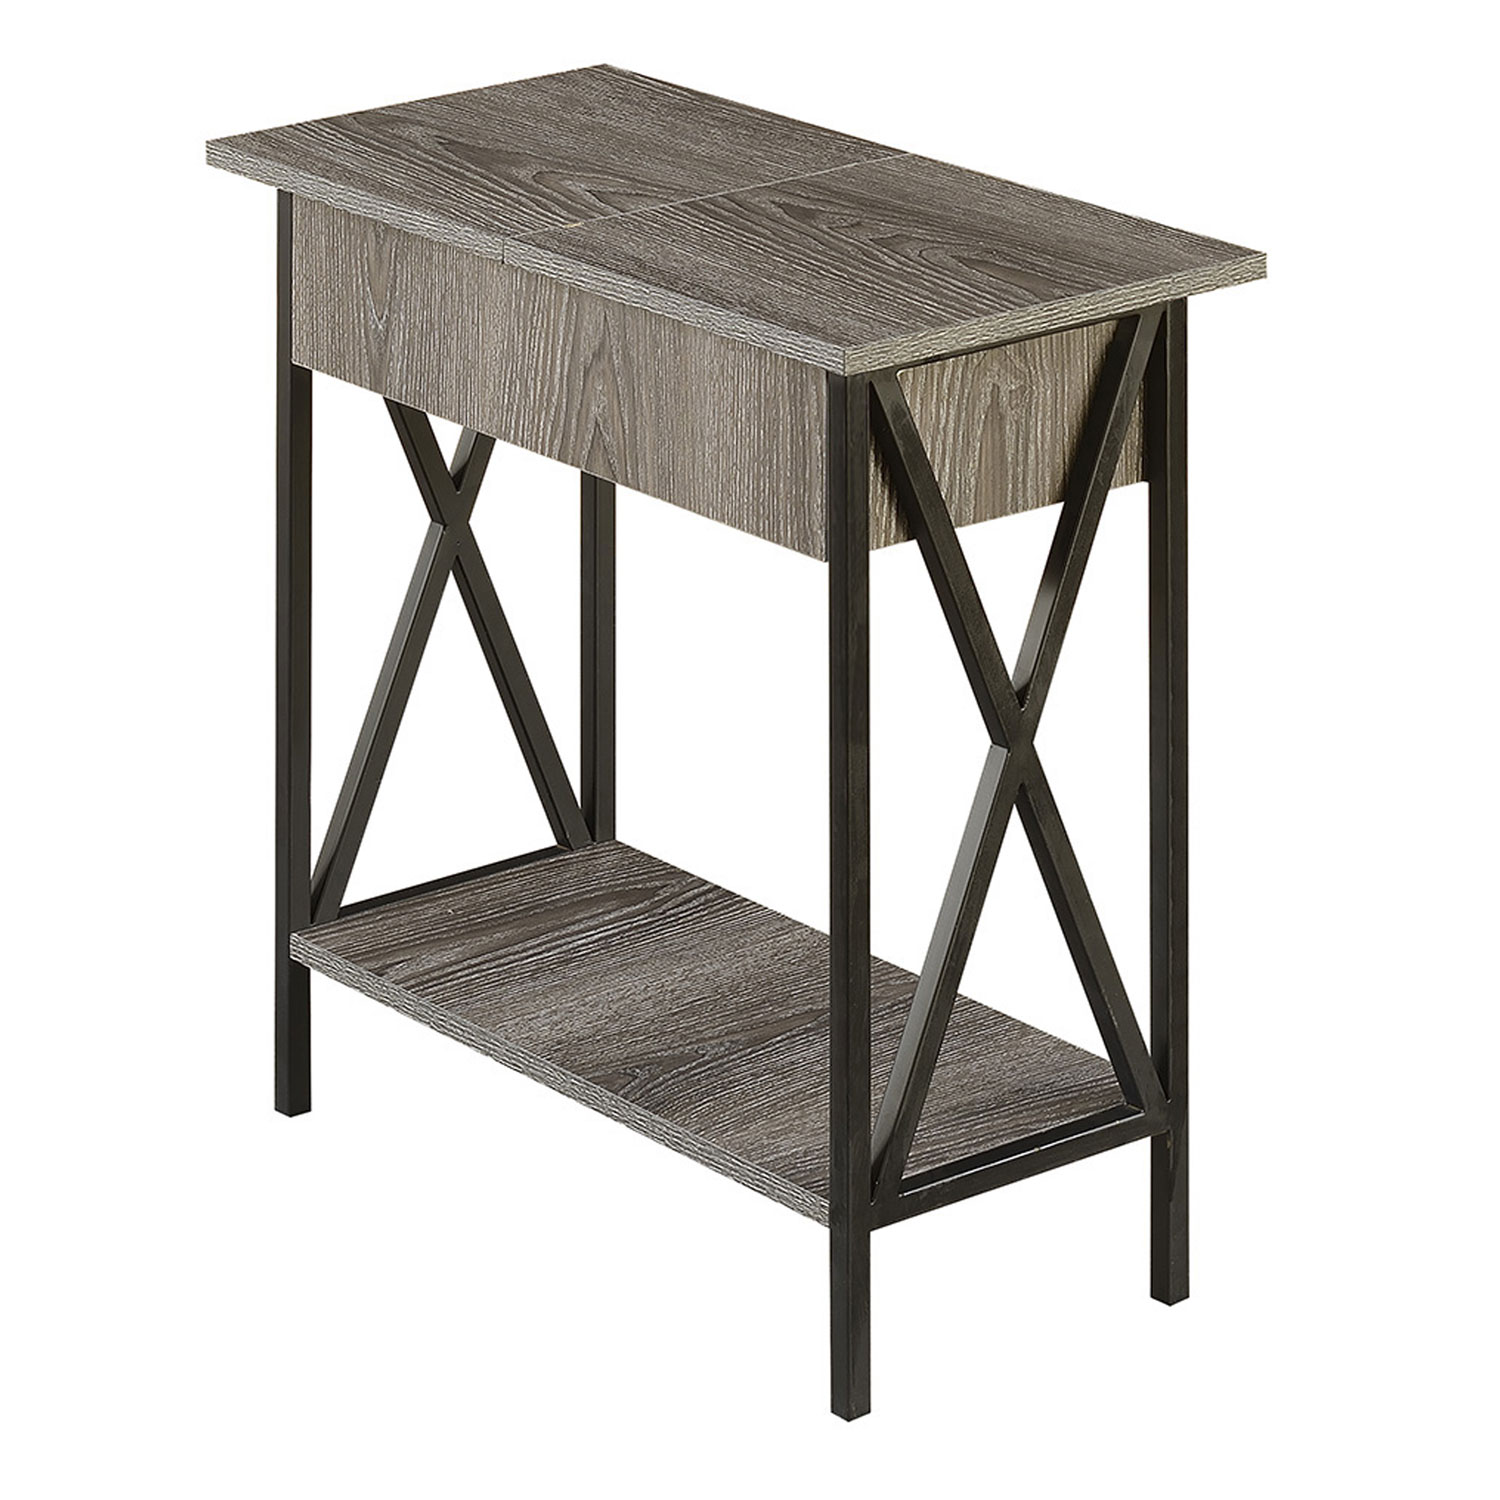 convenience concepts tucson electric flip top end table clarissa metal accent hover zoom bankers lamp ashley furniture chairside wagon wheel trestle supports target legs drum kit